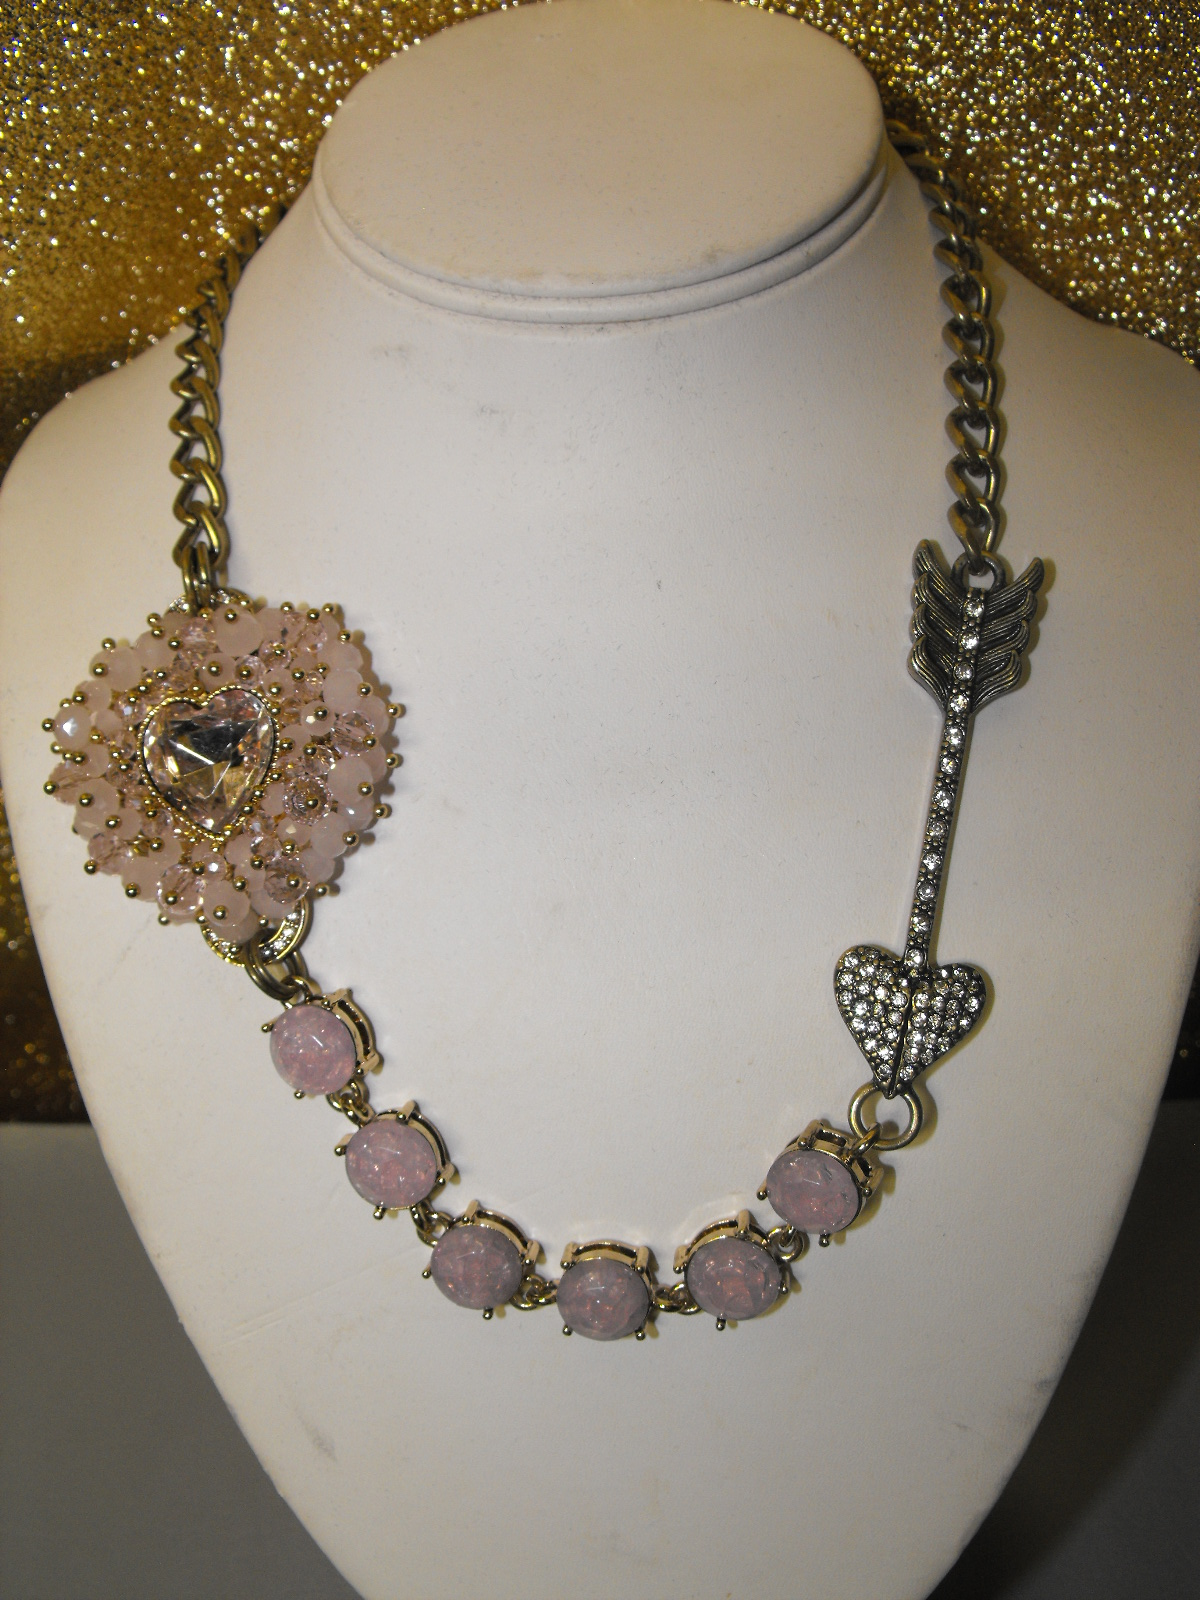 Betsey Johnson Signed Heart Necklace Clive S Unique Jewelry